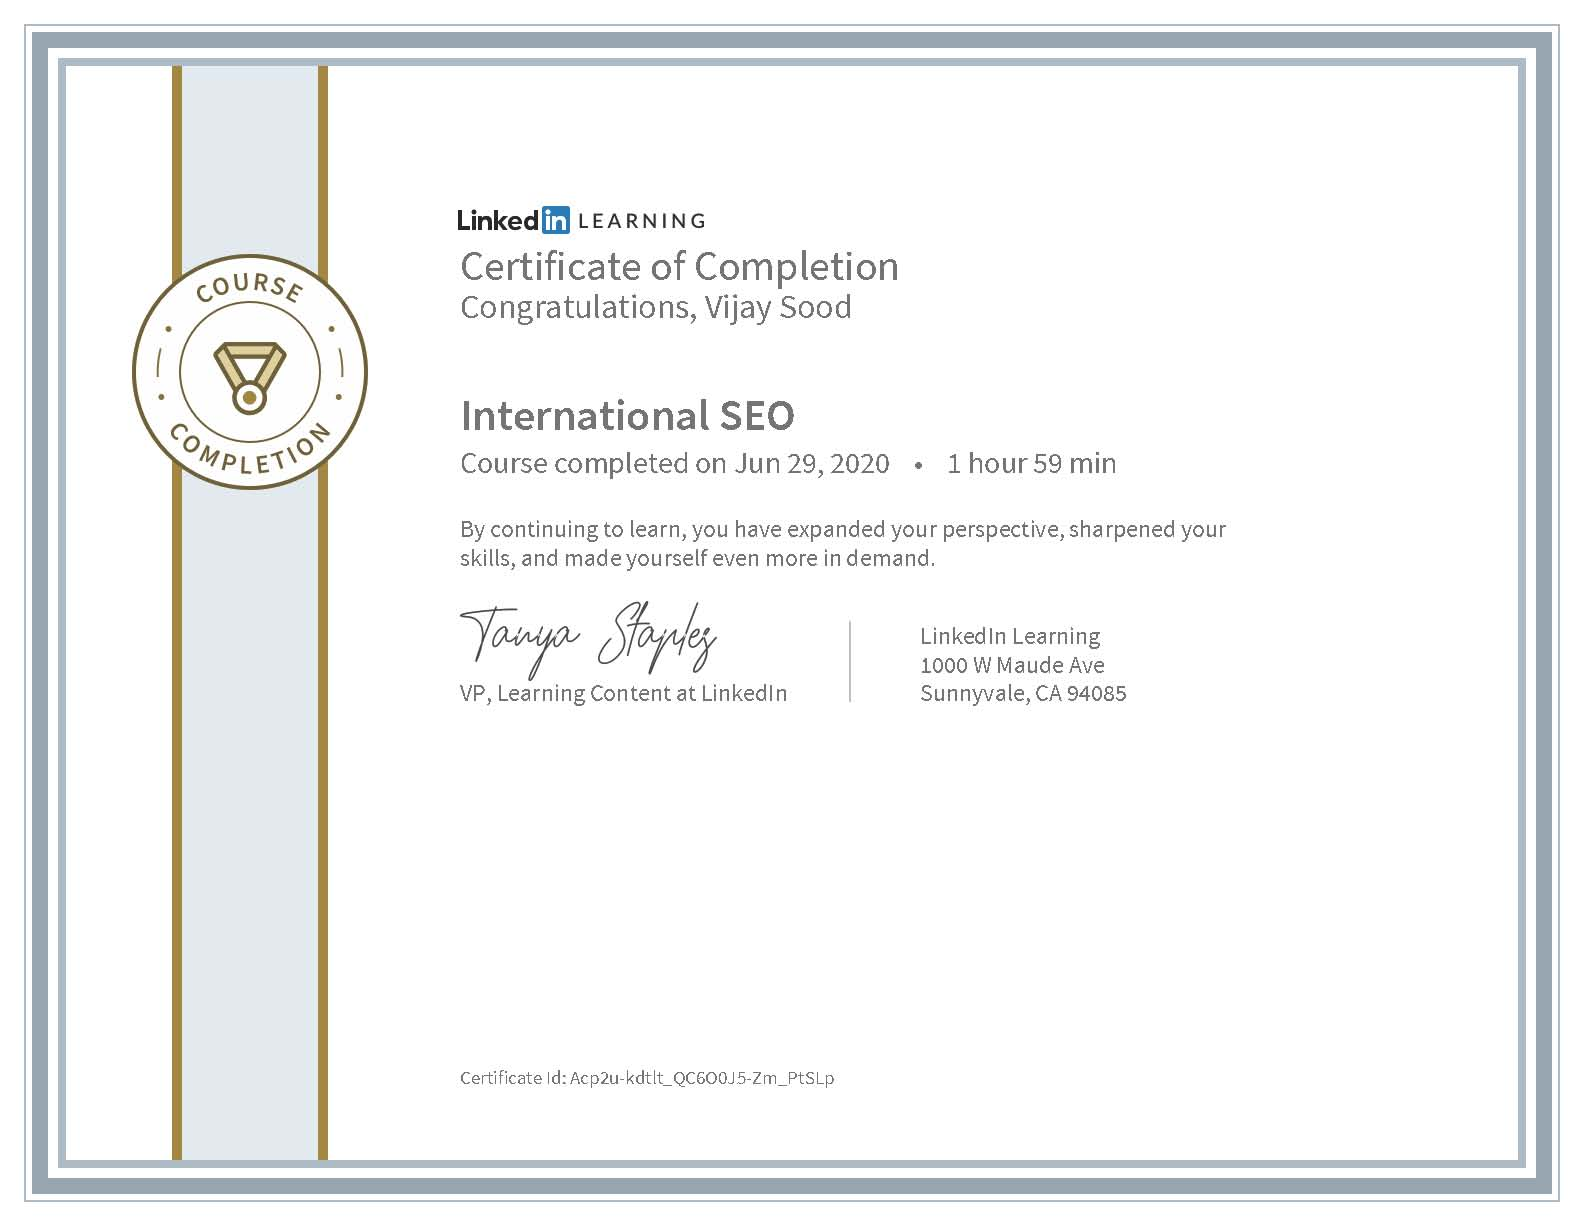 CertificateOfCompletion International SEO